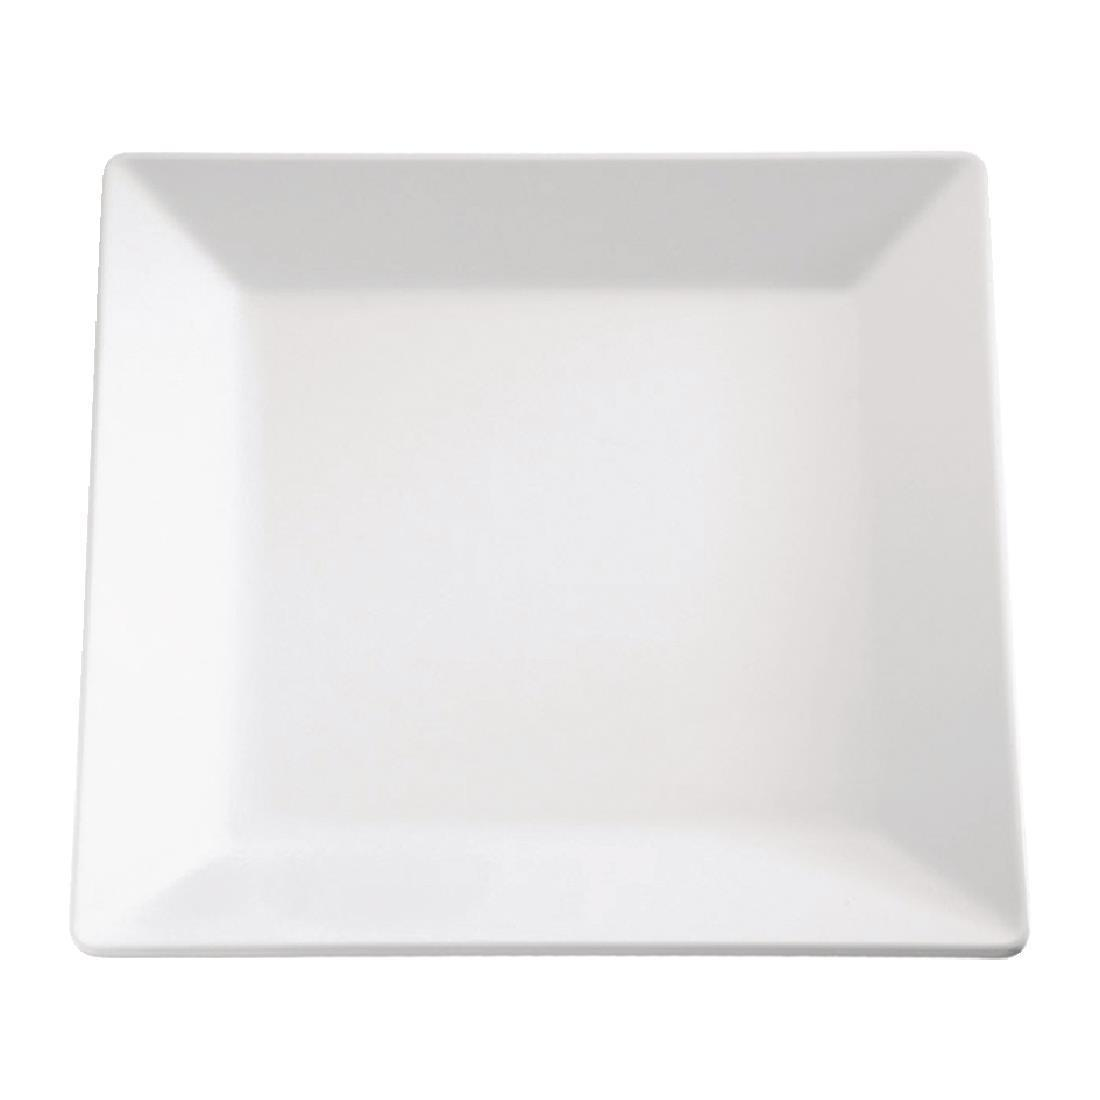 APS Pure Melamine Square Tray 20in - Each - GF174